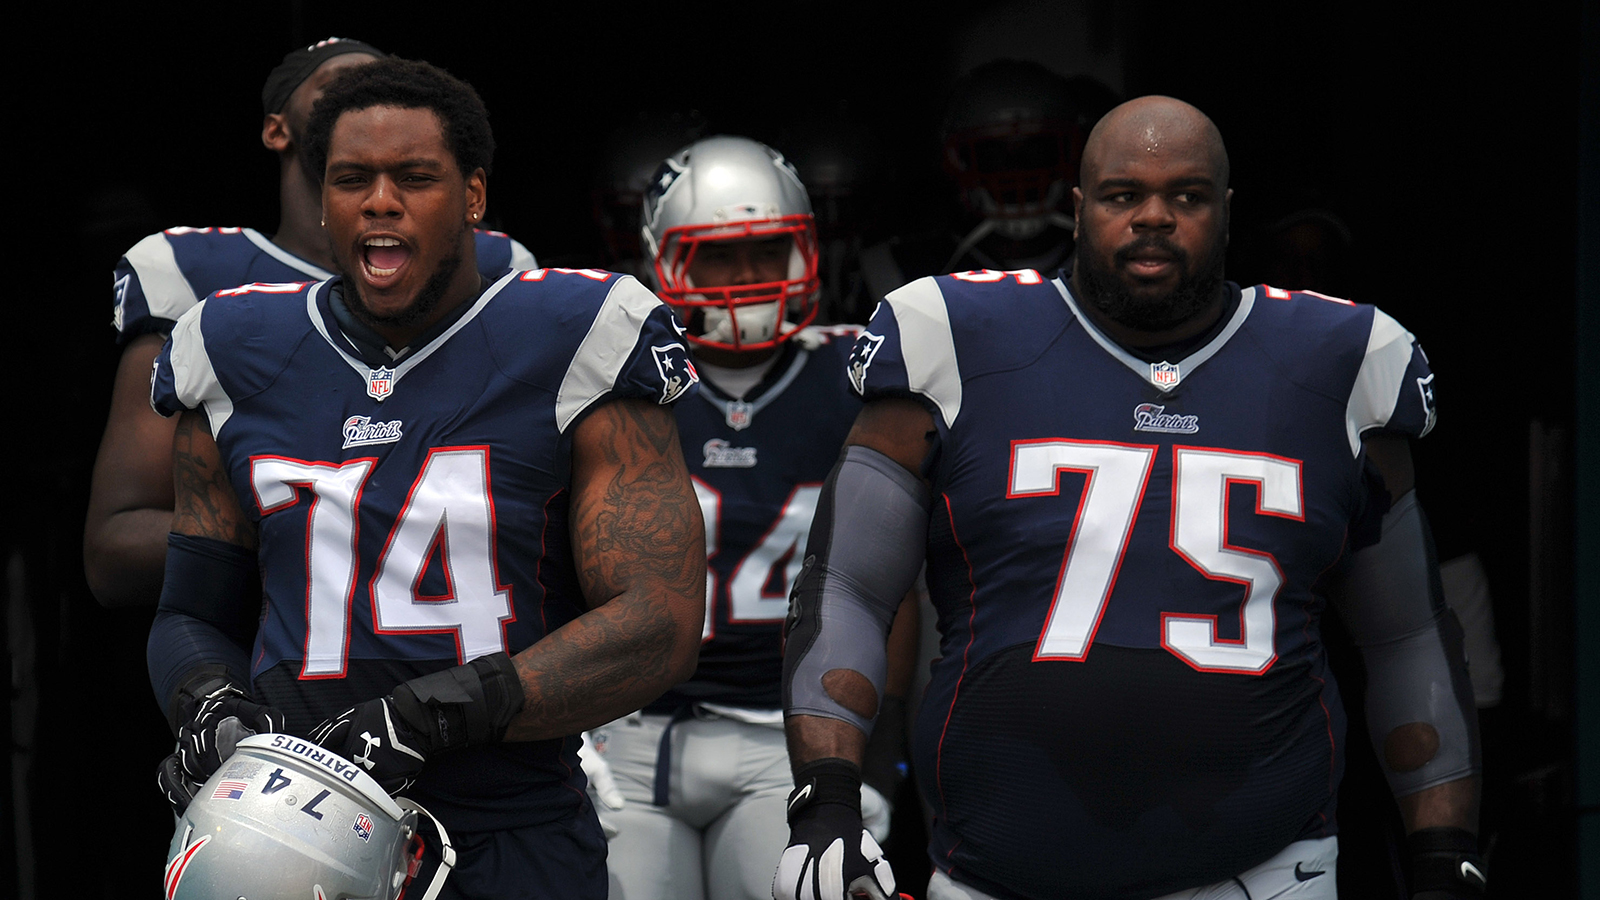 Patriots DL Dominique Easley: 'I don't feel I'm at my best yet'